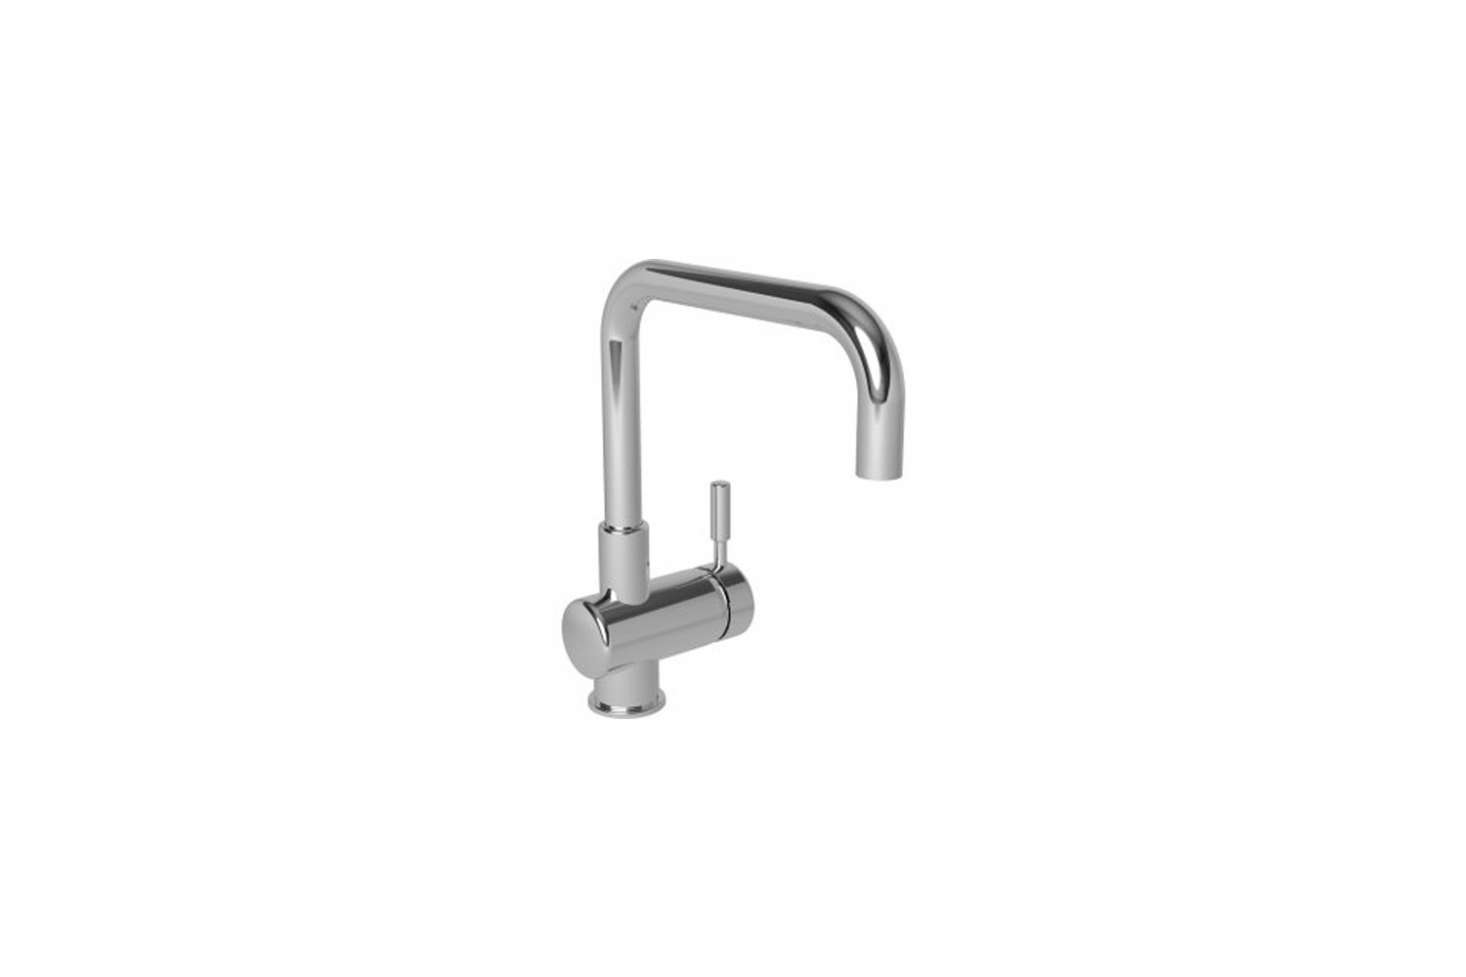 The Newport Brass East Square Single Hole Kitchen Faucet, shown in polished chrome, is $501.20 at eFaucets.